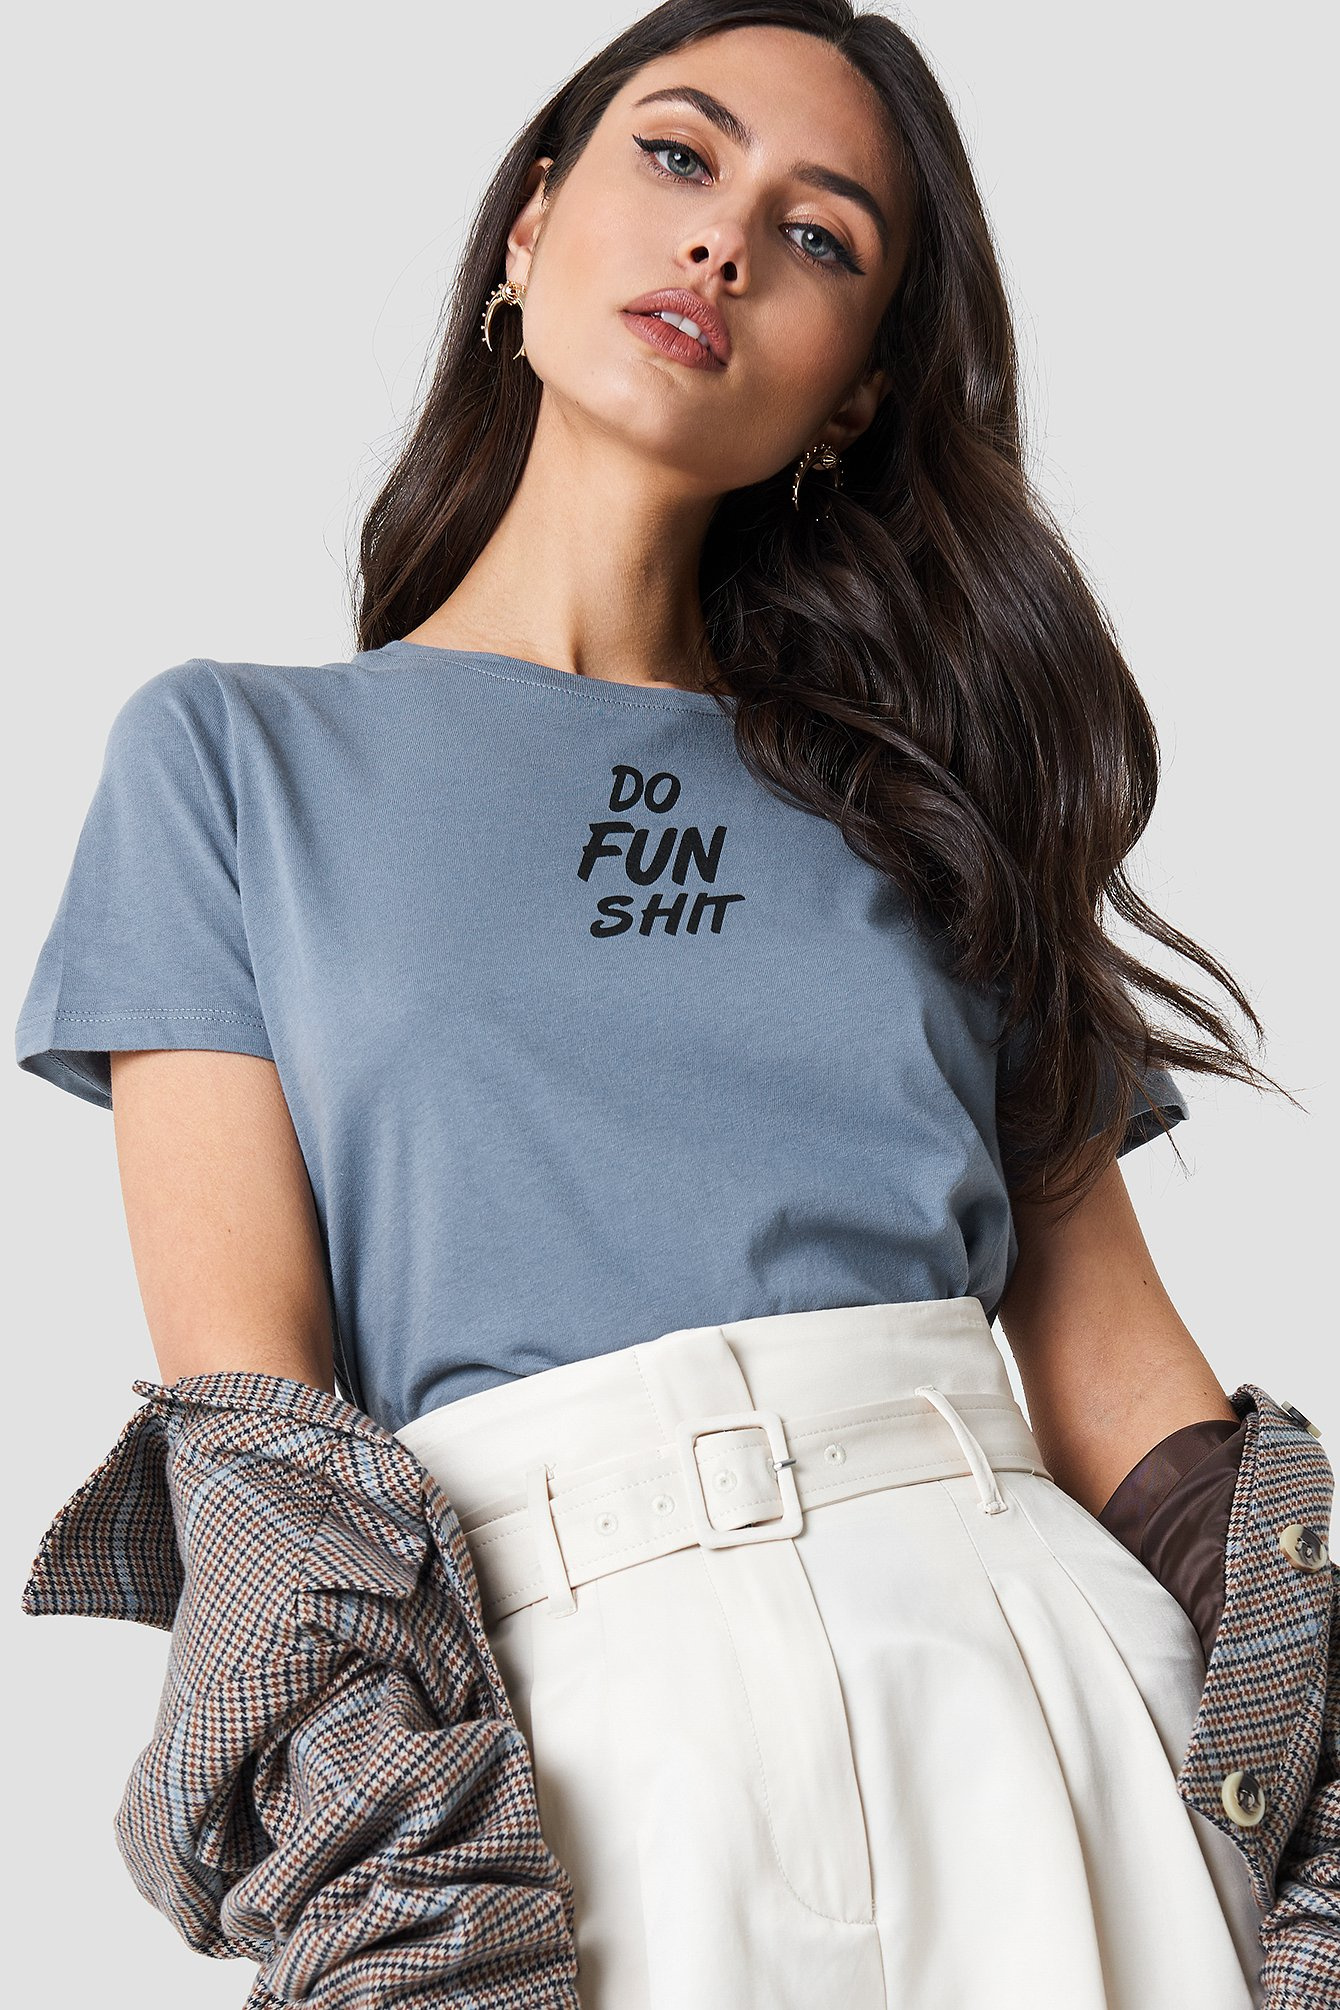 Do fun shit tee